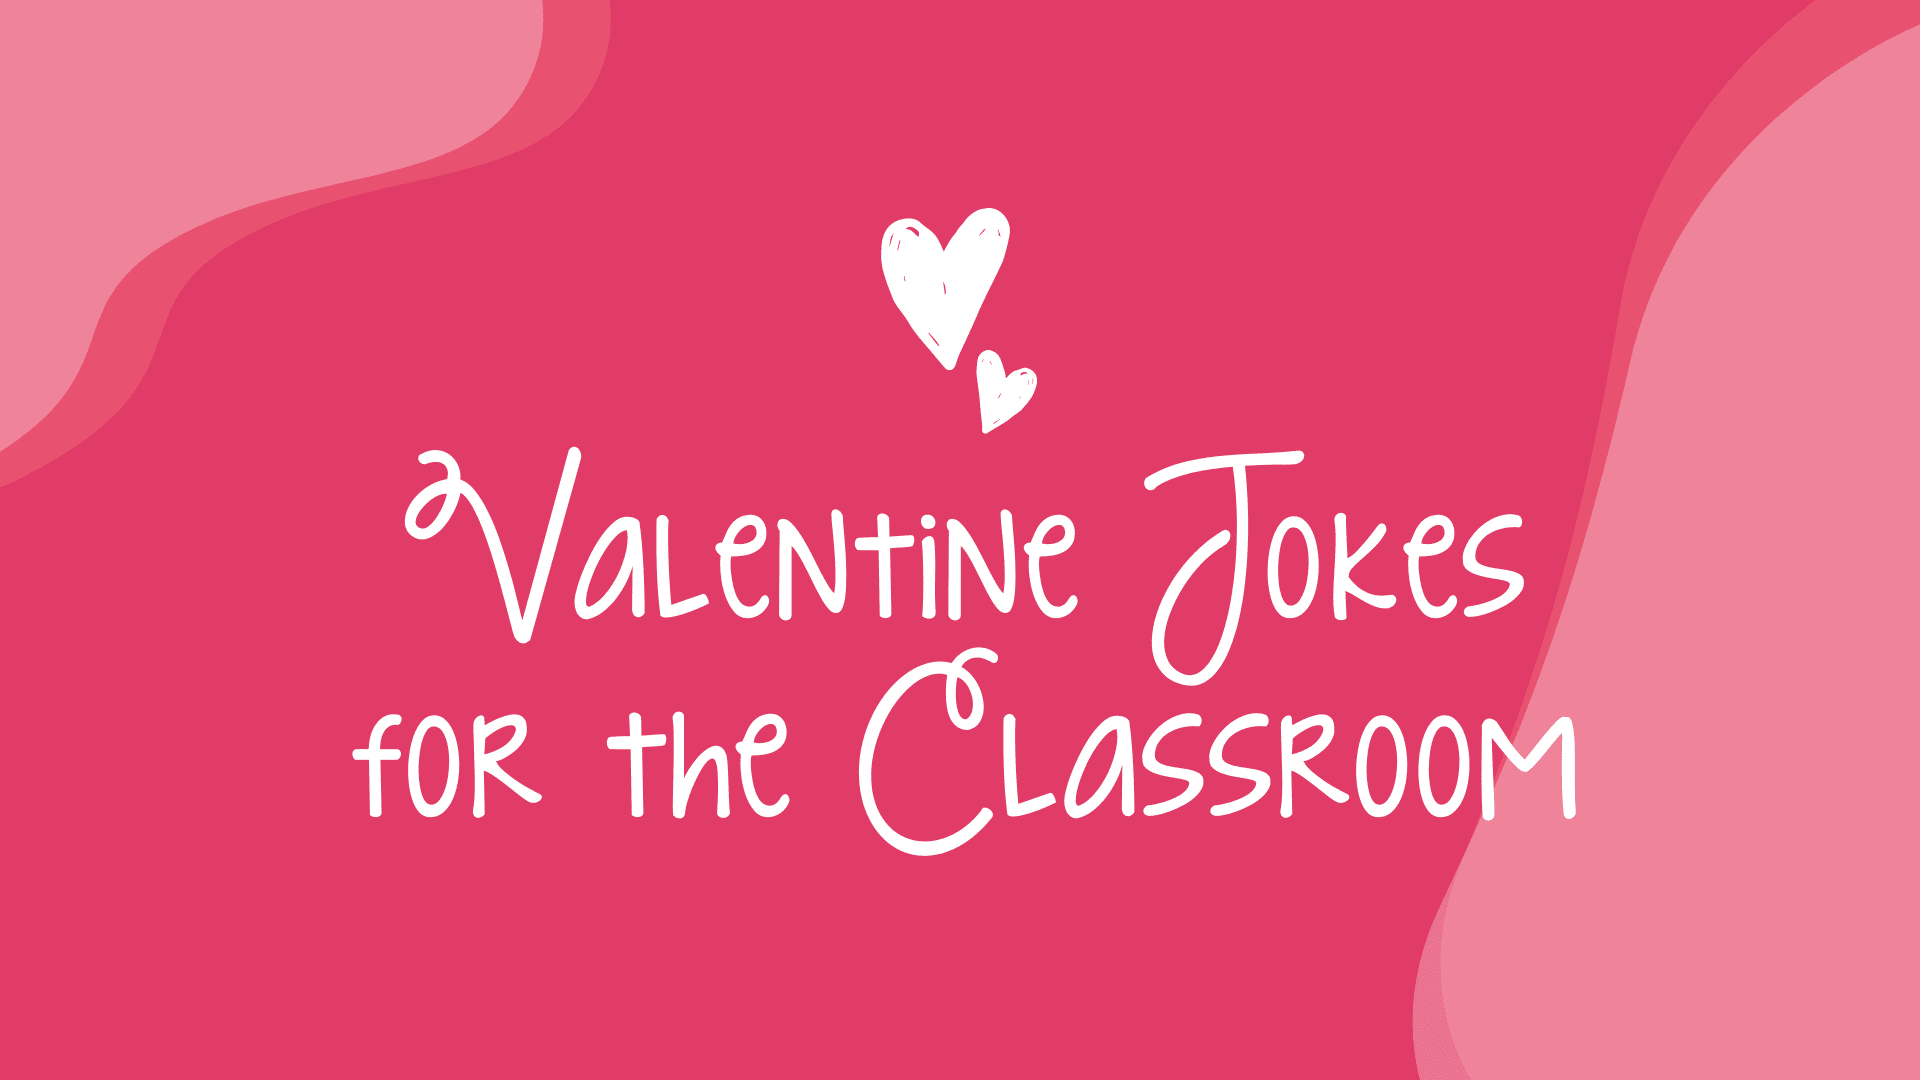 hight resolution of Valentine Jokes to Share With Your Students! - WeAreTeachers